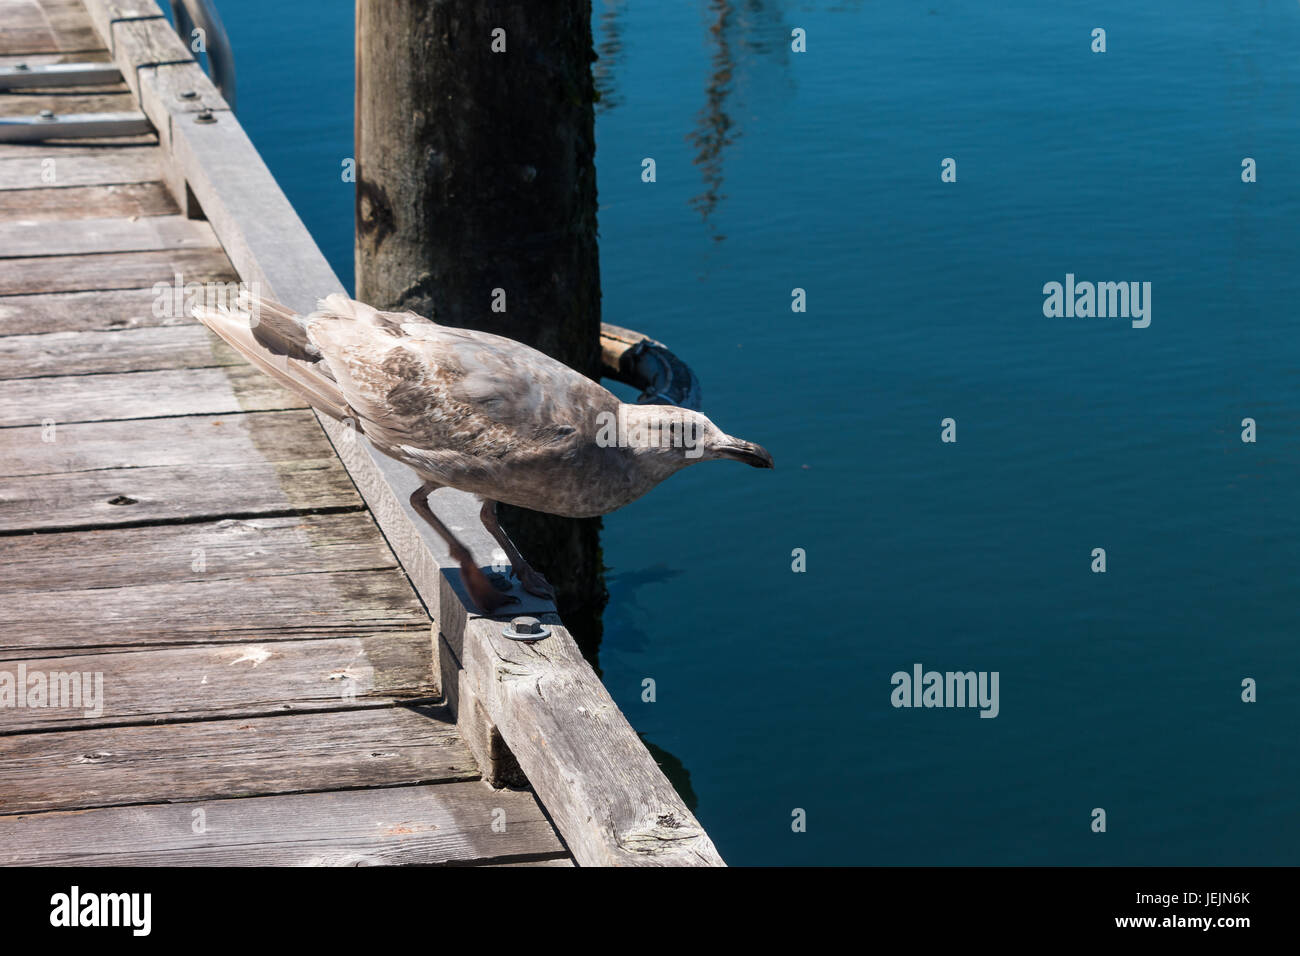 Juvenile Glaucous-winged gull (Larus glaucescens) perching on edge of dock - Stock Image